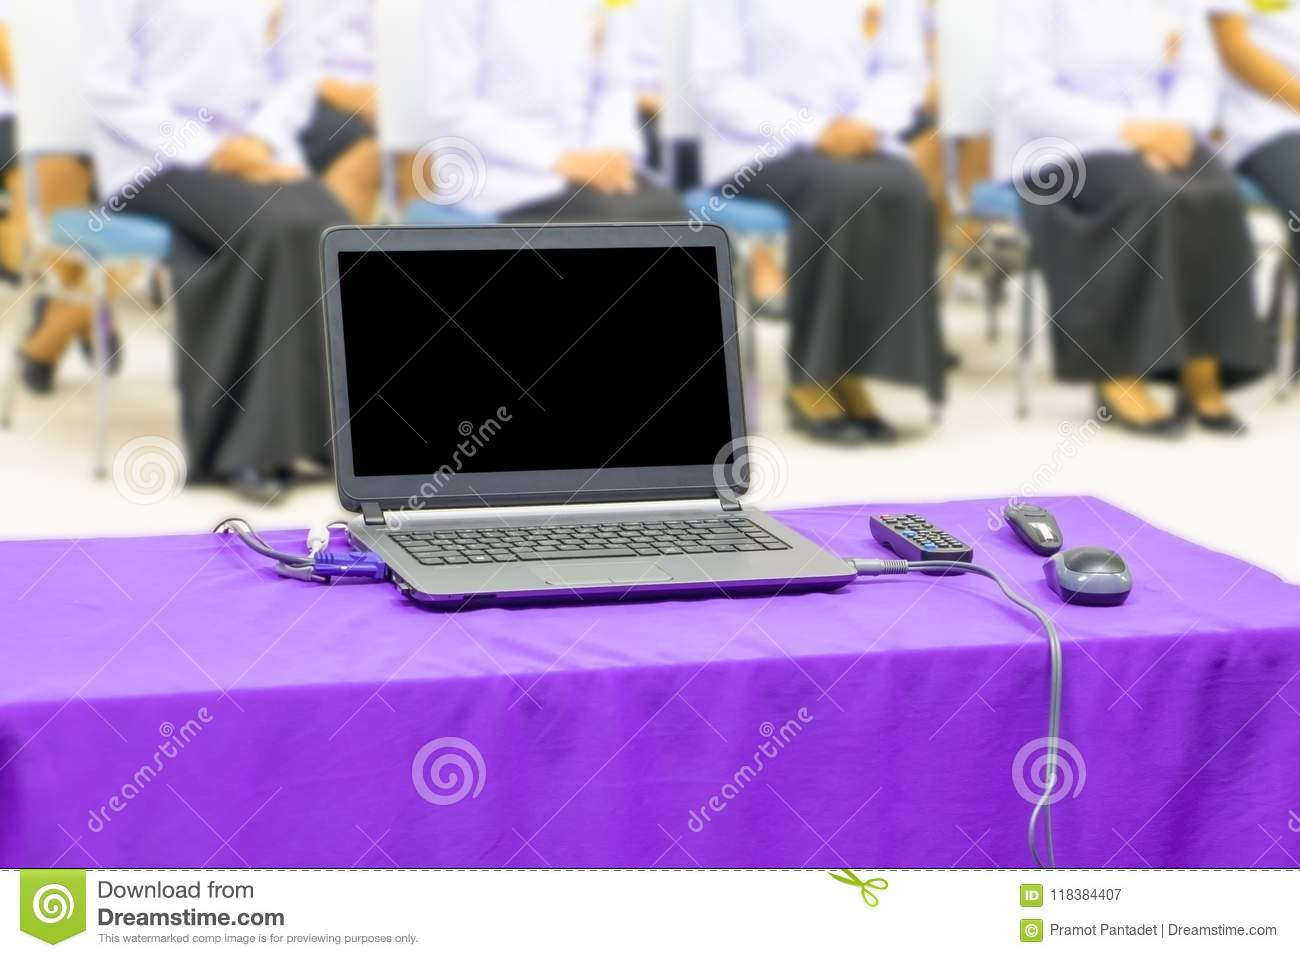 Computer on the table purple fabric and group students blur in the a classroom with copy space add text